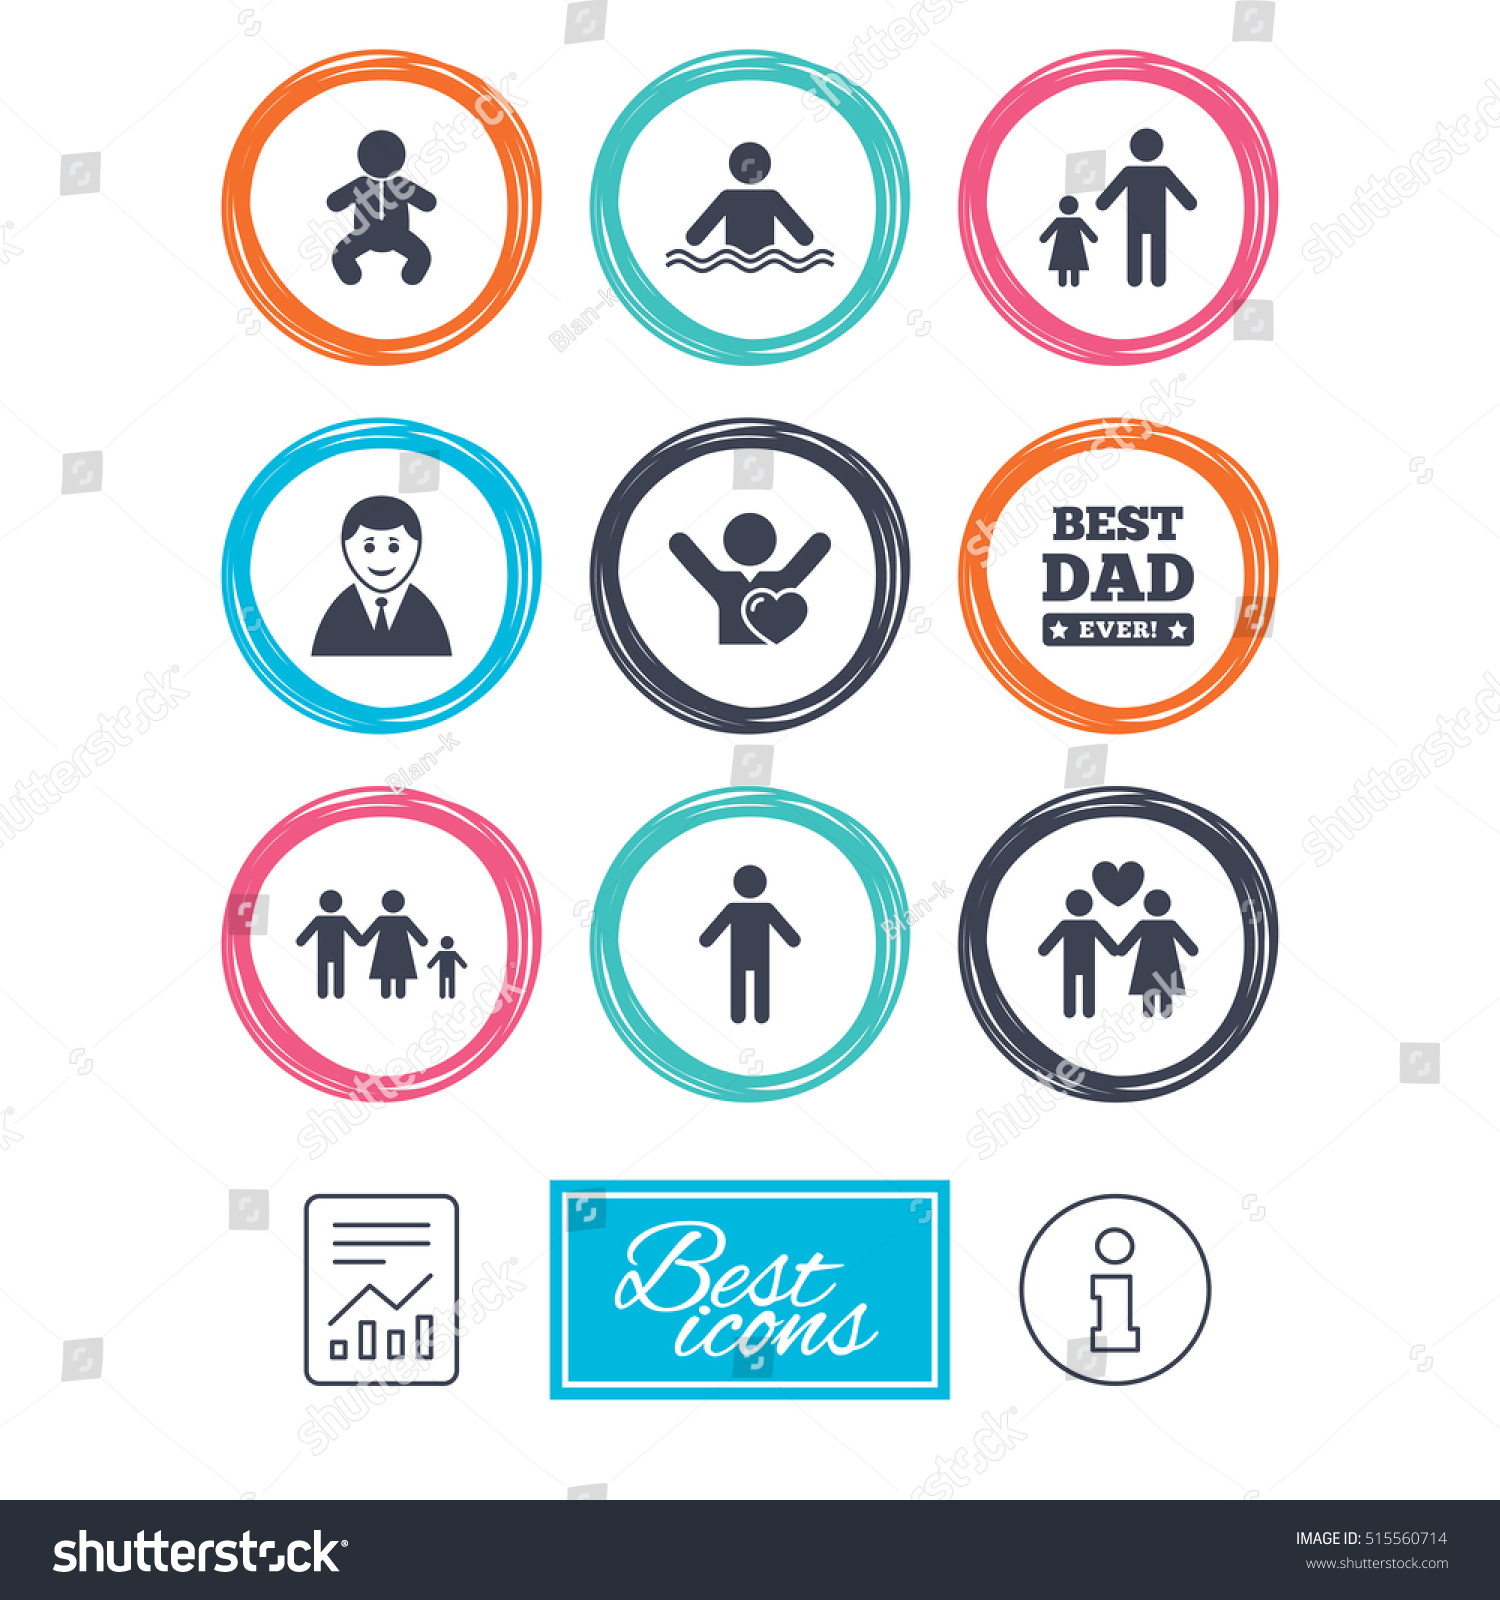 People Family Icons Swimming Pool Love Stock Vector Royalty Free